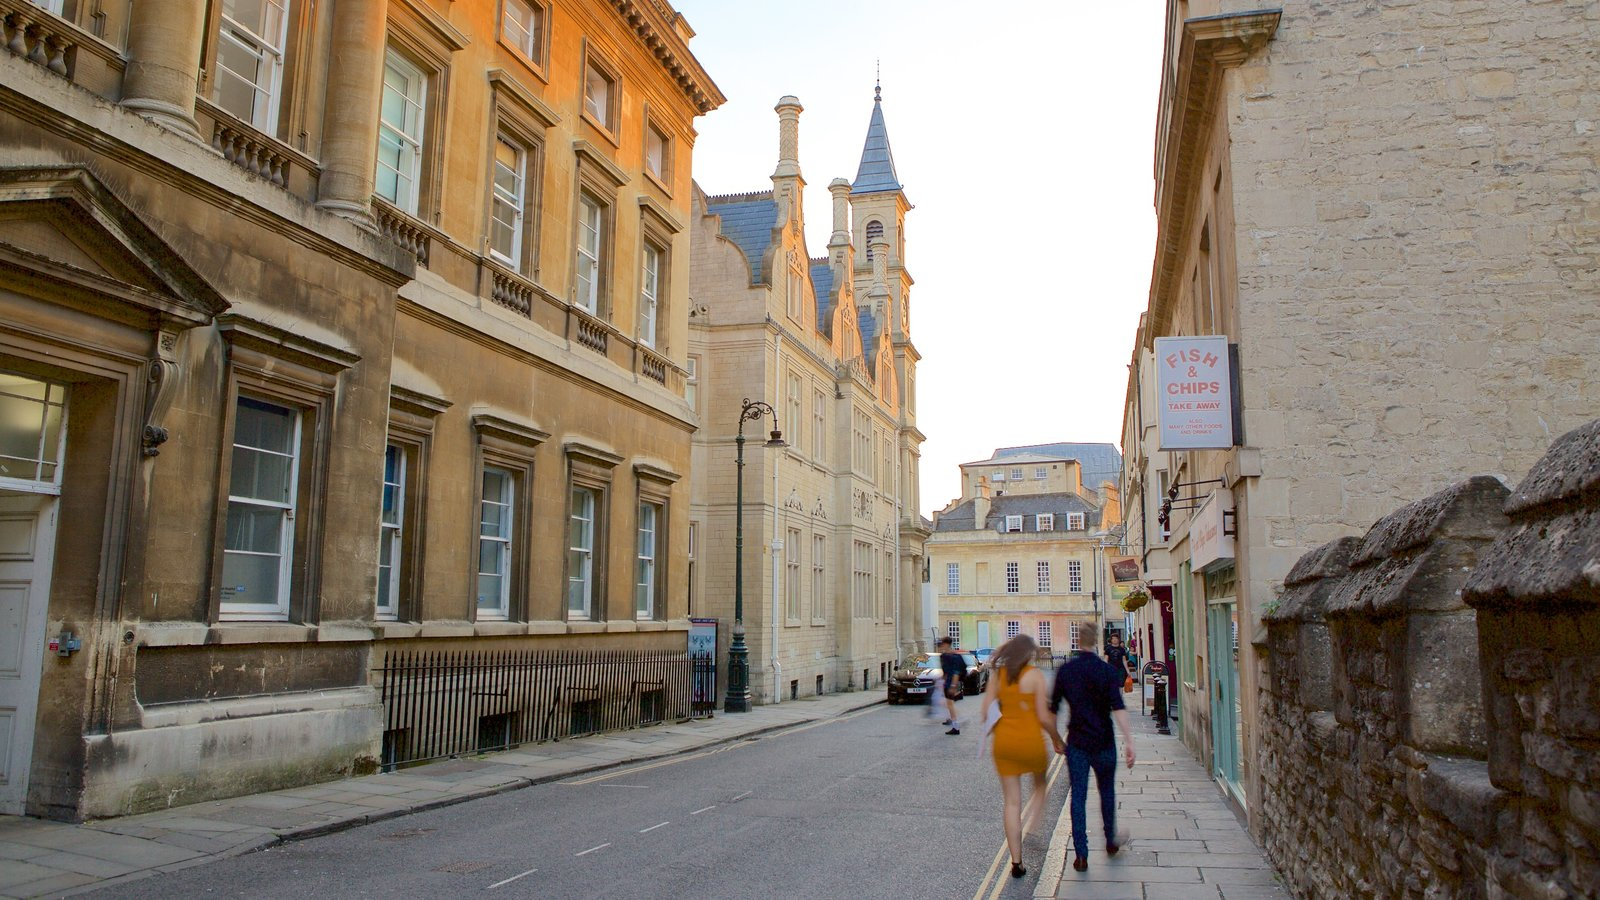 Bath which includes a city, heritage architecture and street scenes